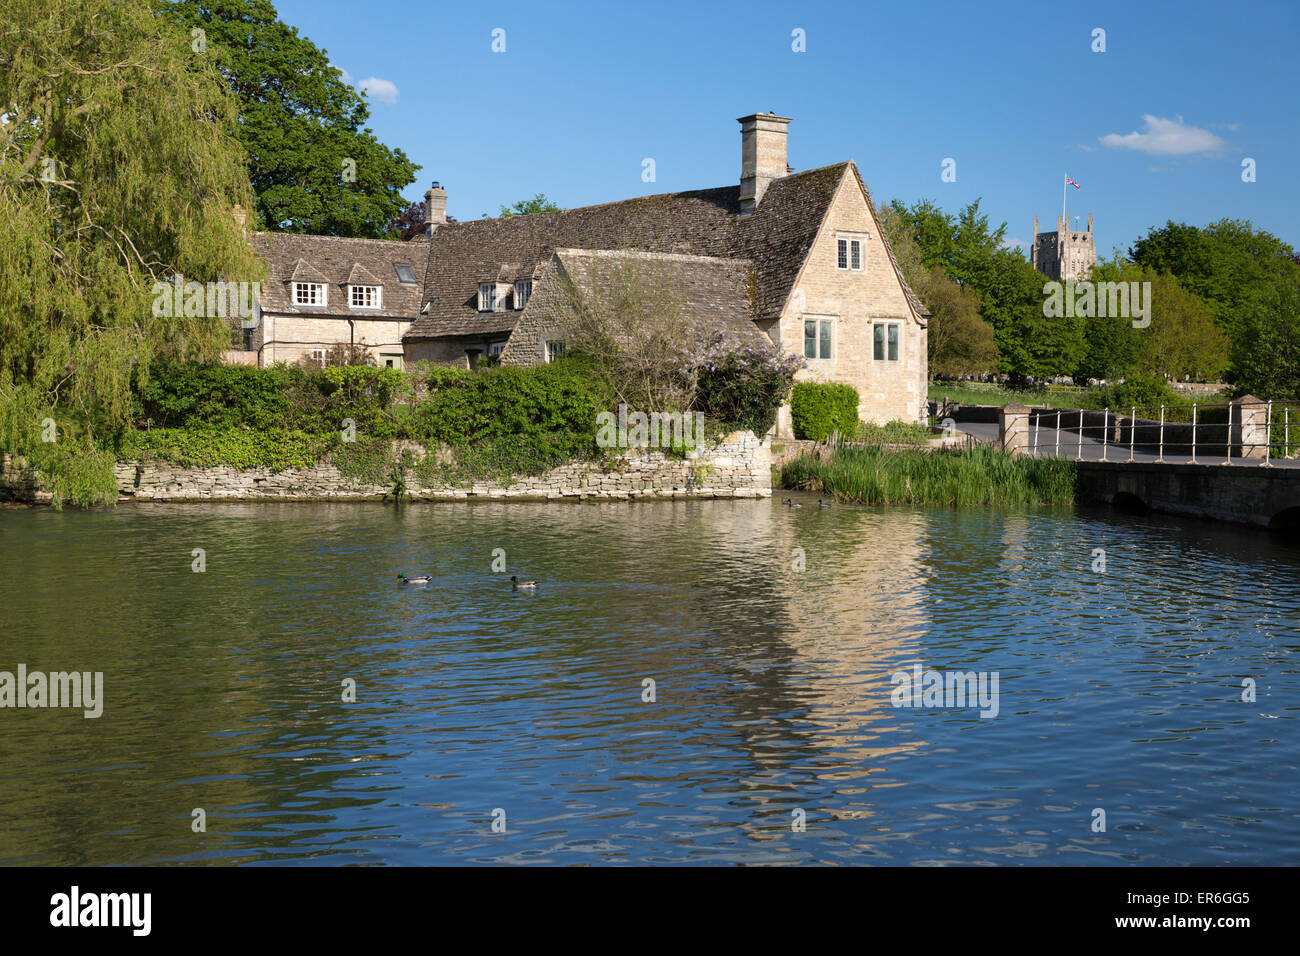 River Coln and Fairford church, Fairford, Cotswolds, Gloucestershire, England, United Kingdom, Europe - Stock Image